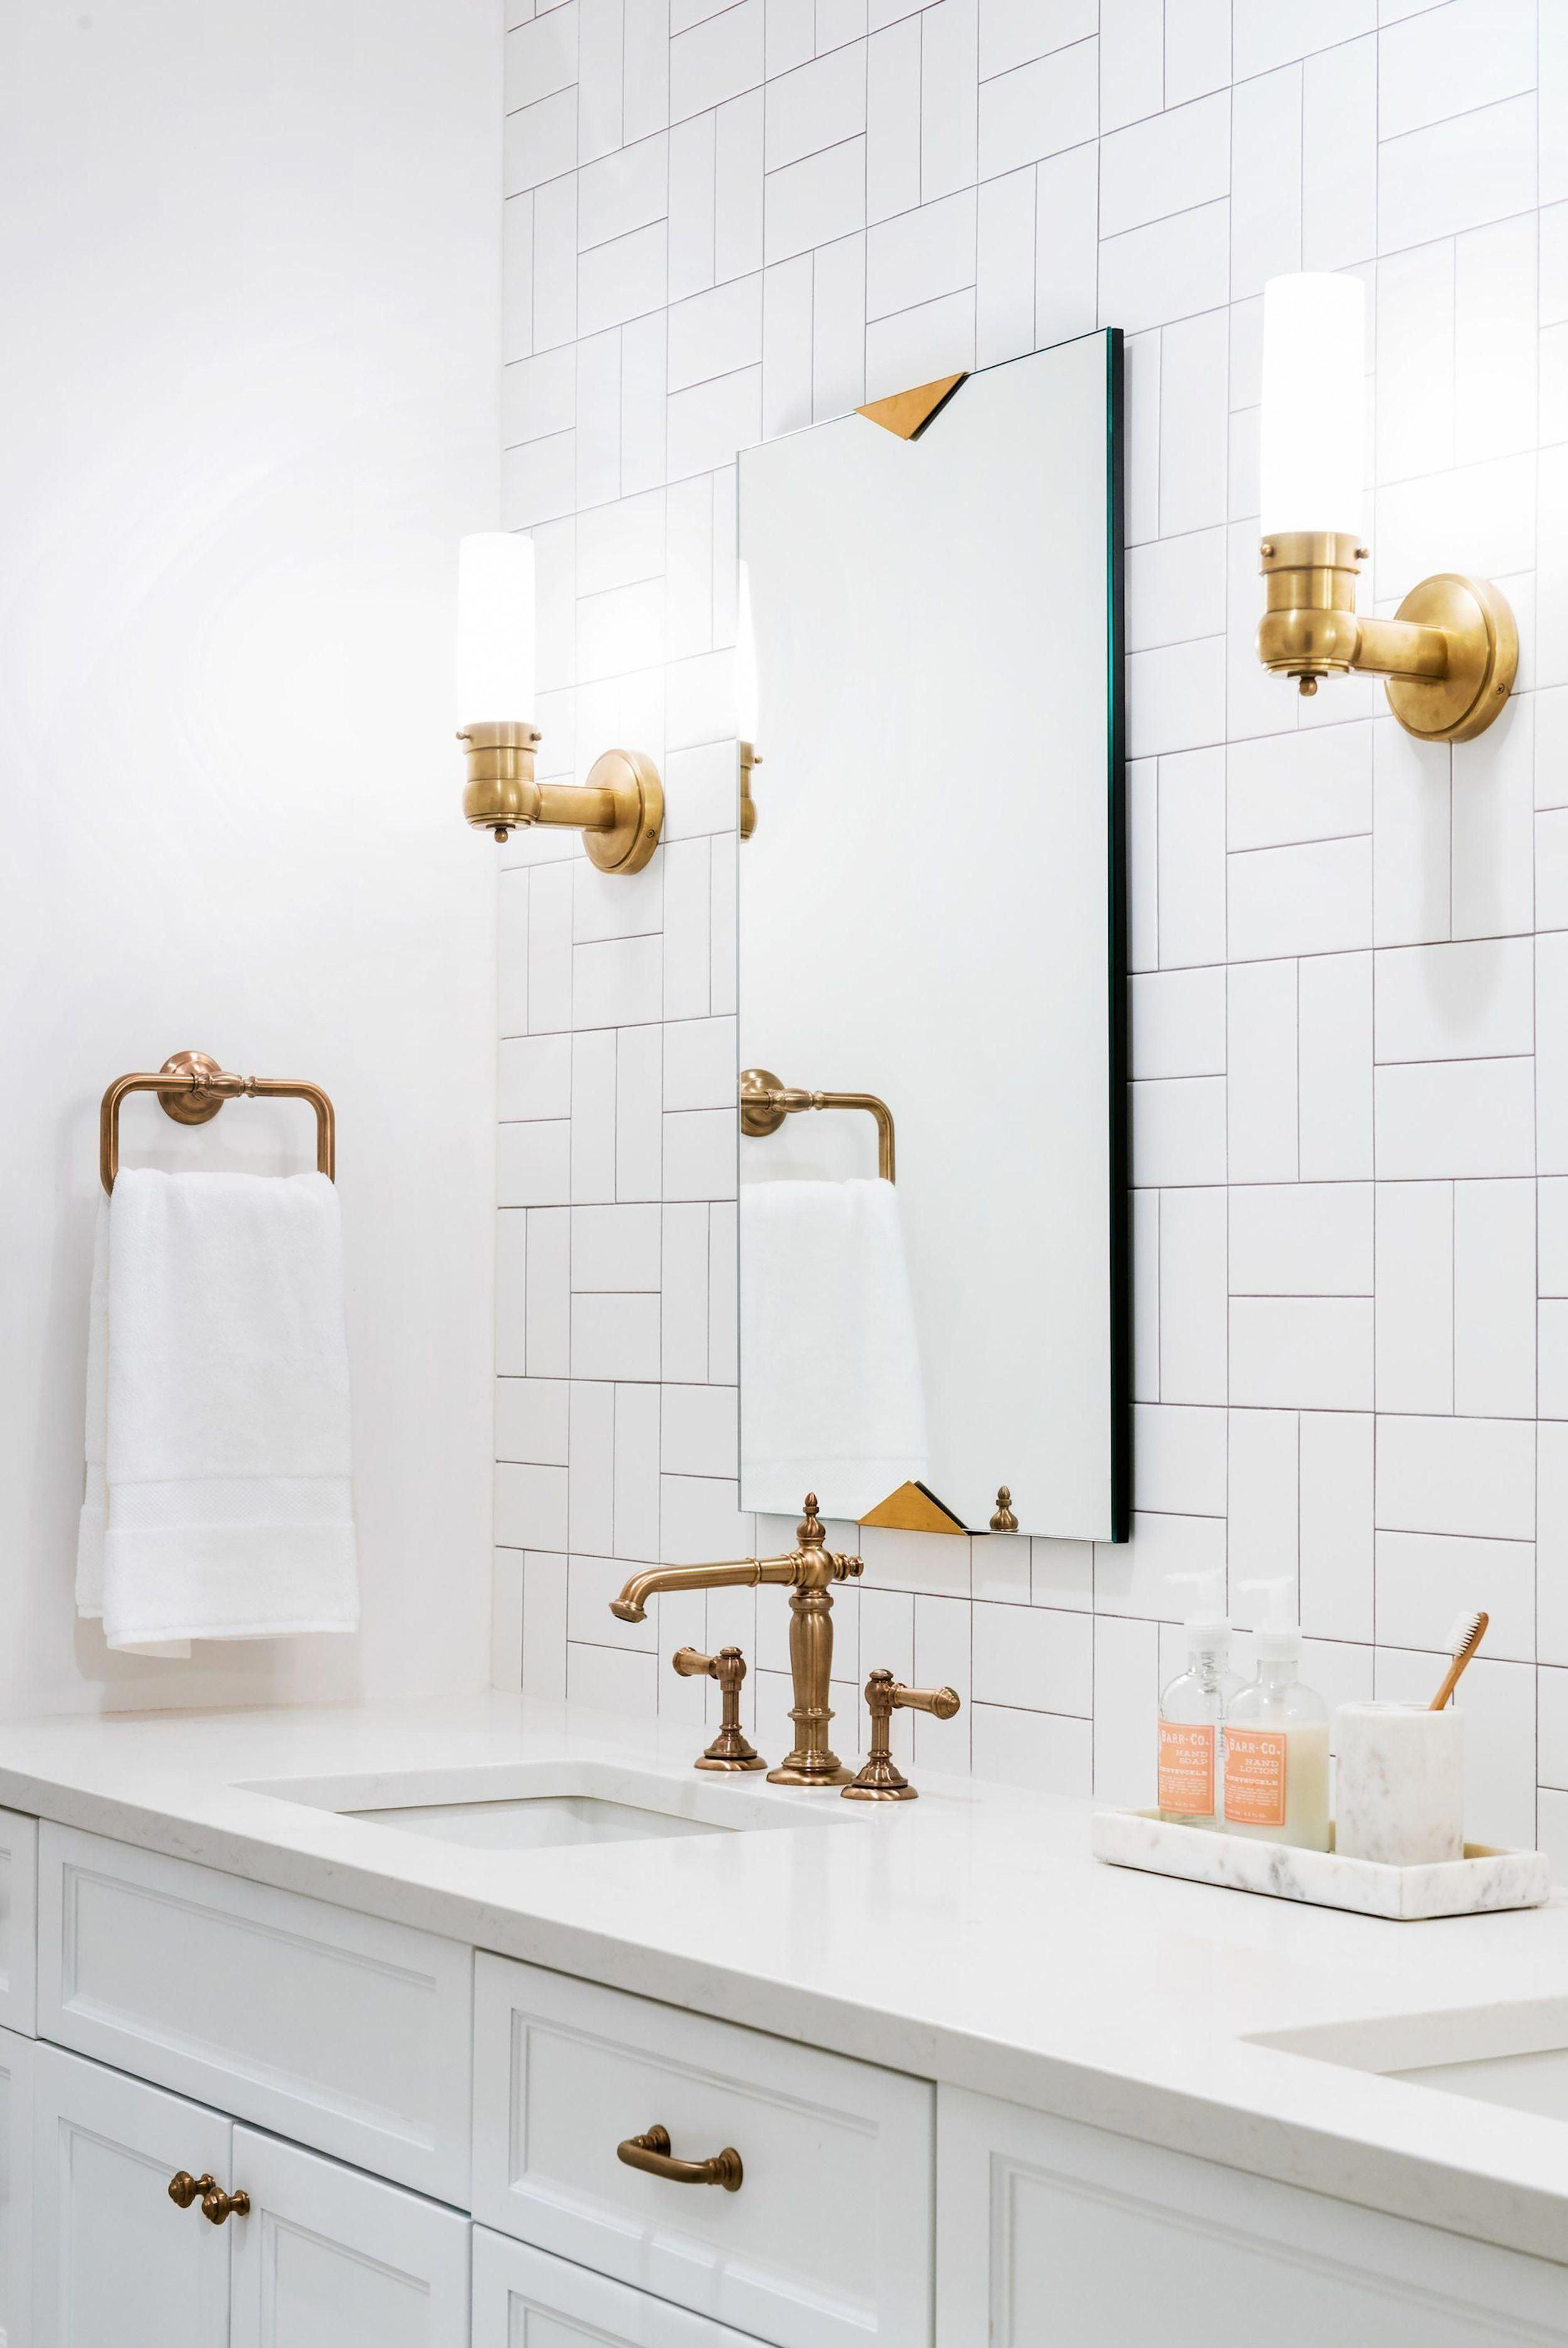 We love this all-white bathroom seen on Jen Talbot design that uses a basketweave or crosshatch pattern with white tile and pairs it with darker contrasting grout for a little bit of contrast! The bronze hardware and marble vanity decor give this minimalist bathroom a beautiful design detail! Love this look? Recreate it with our selection of crisp white subway tiles and a grout like Laticrete Permacolor in Natural Grey!